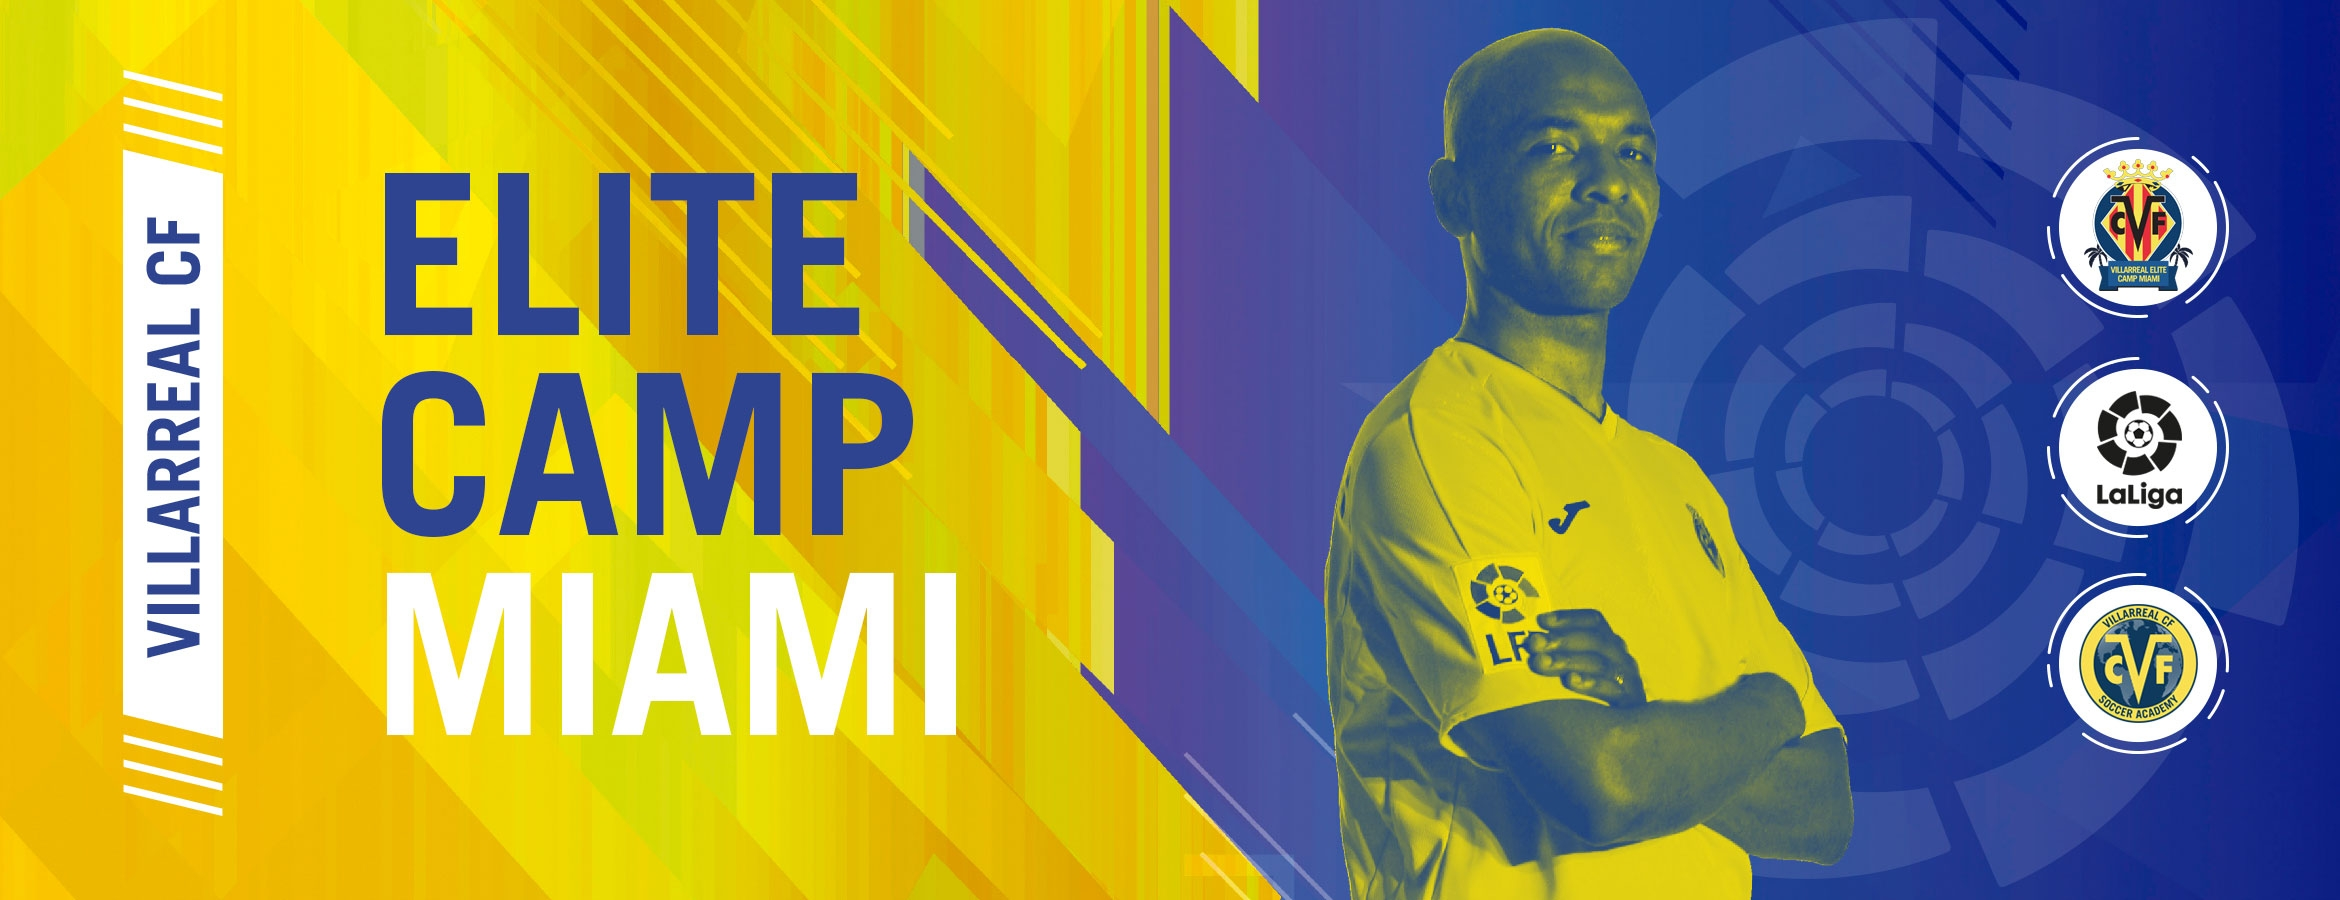 VILLARREAL CF ARRIVES IN MIAMI HAND IN HAND WITH LALIGA